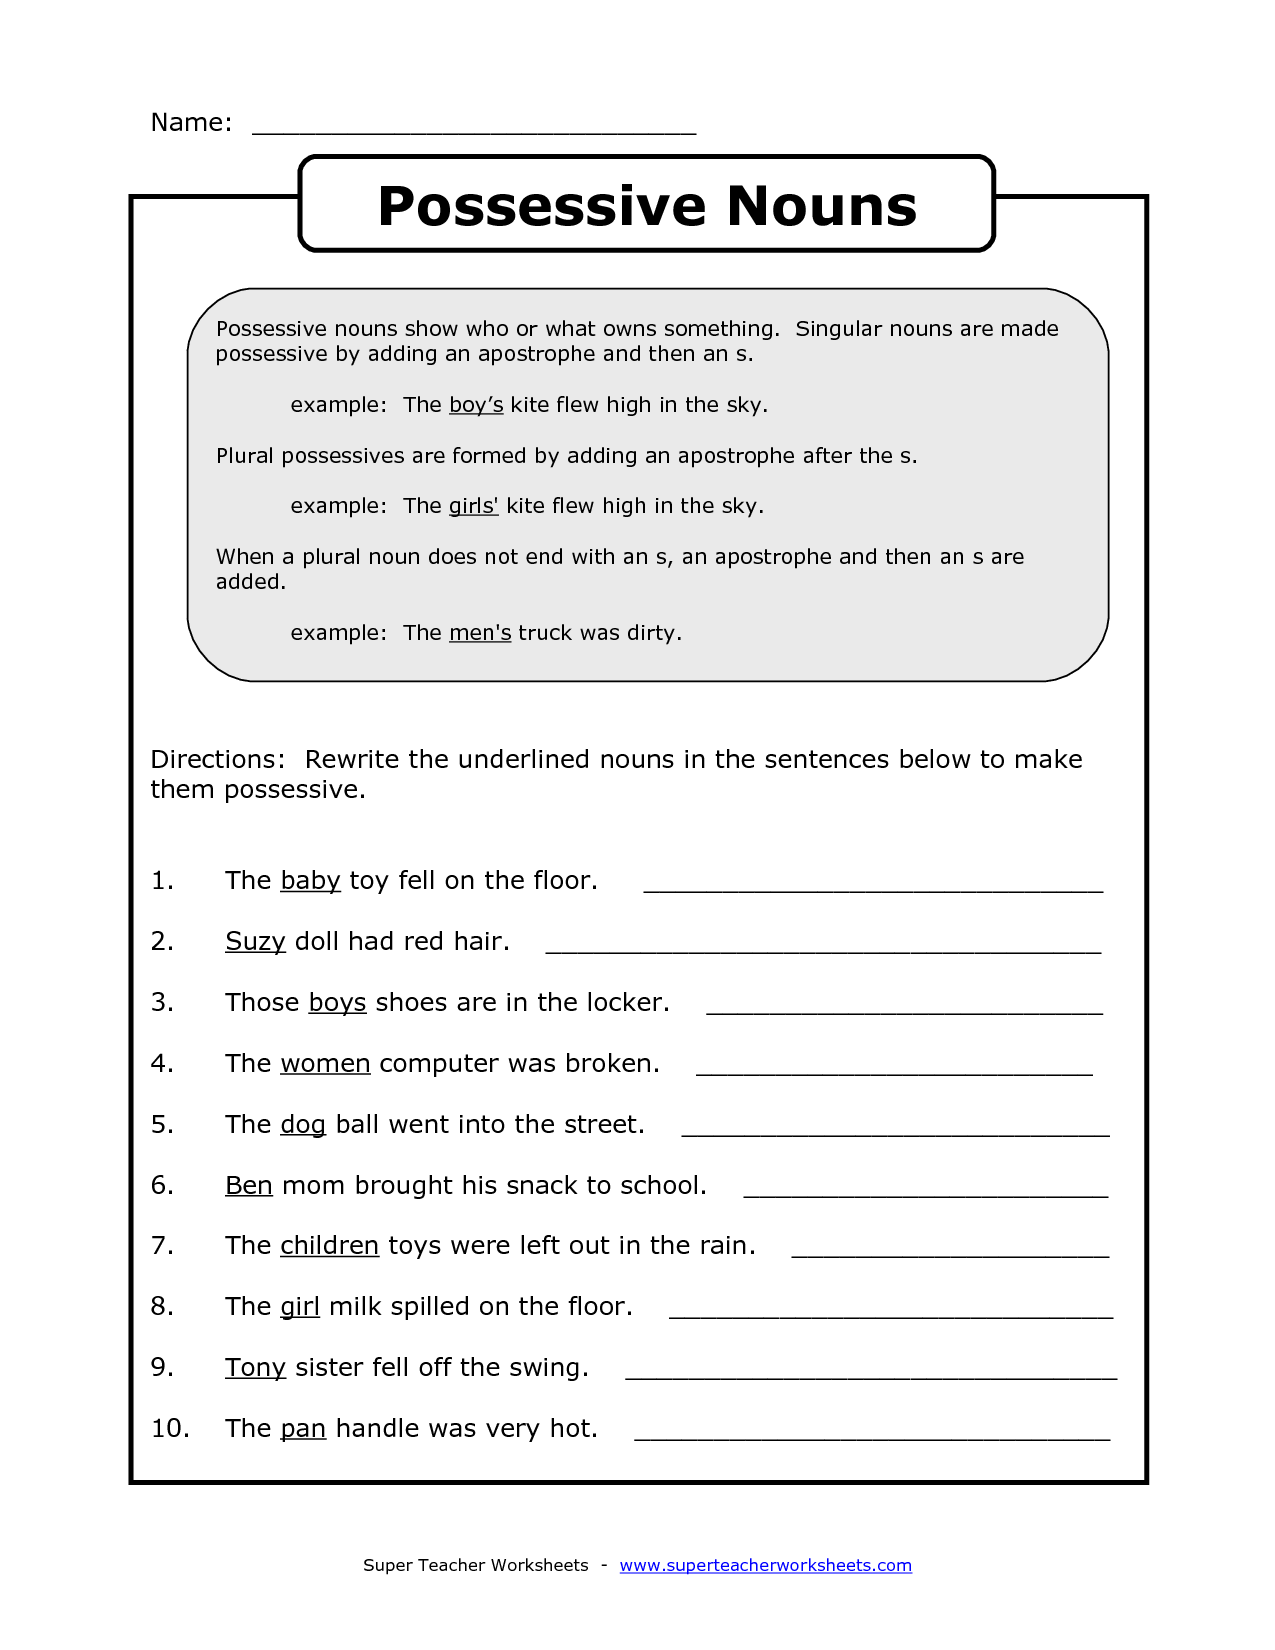 Printables Pronoun Worksheets High School 1000 images about nouns verbs adjectives pronouns on pinterest common cores second grade freebies and singular plural